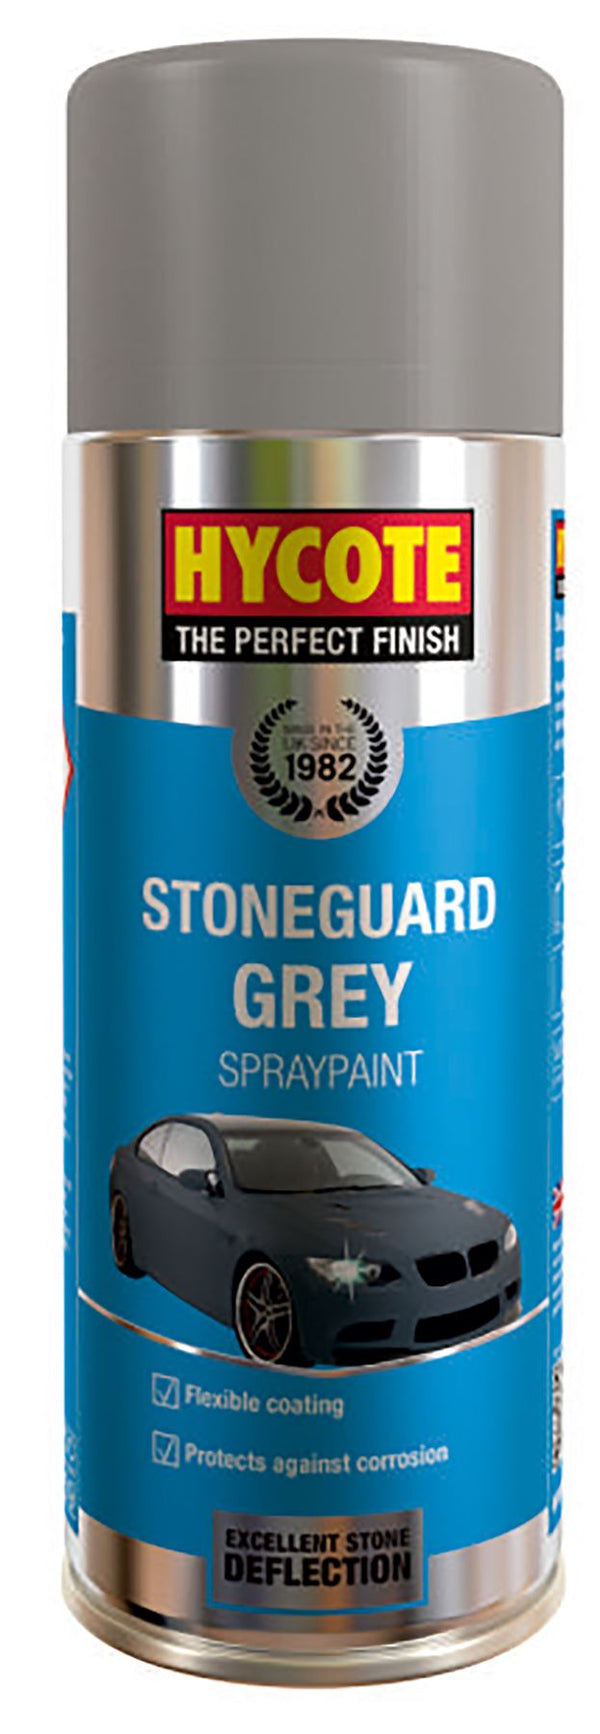 Hycote Stoneguard Grey Paint - 400ml